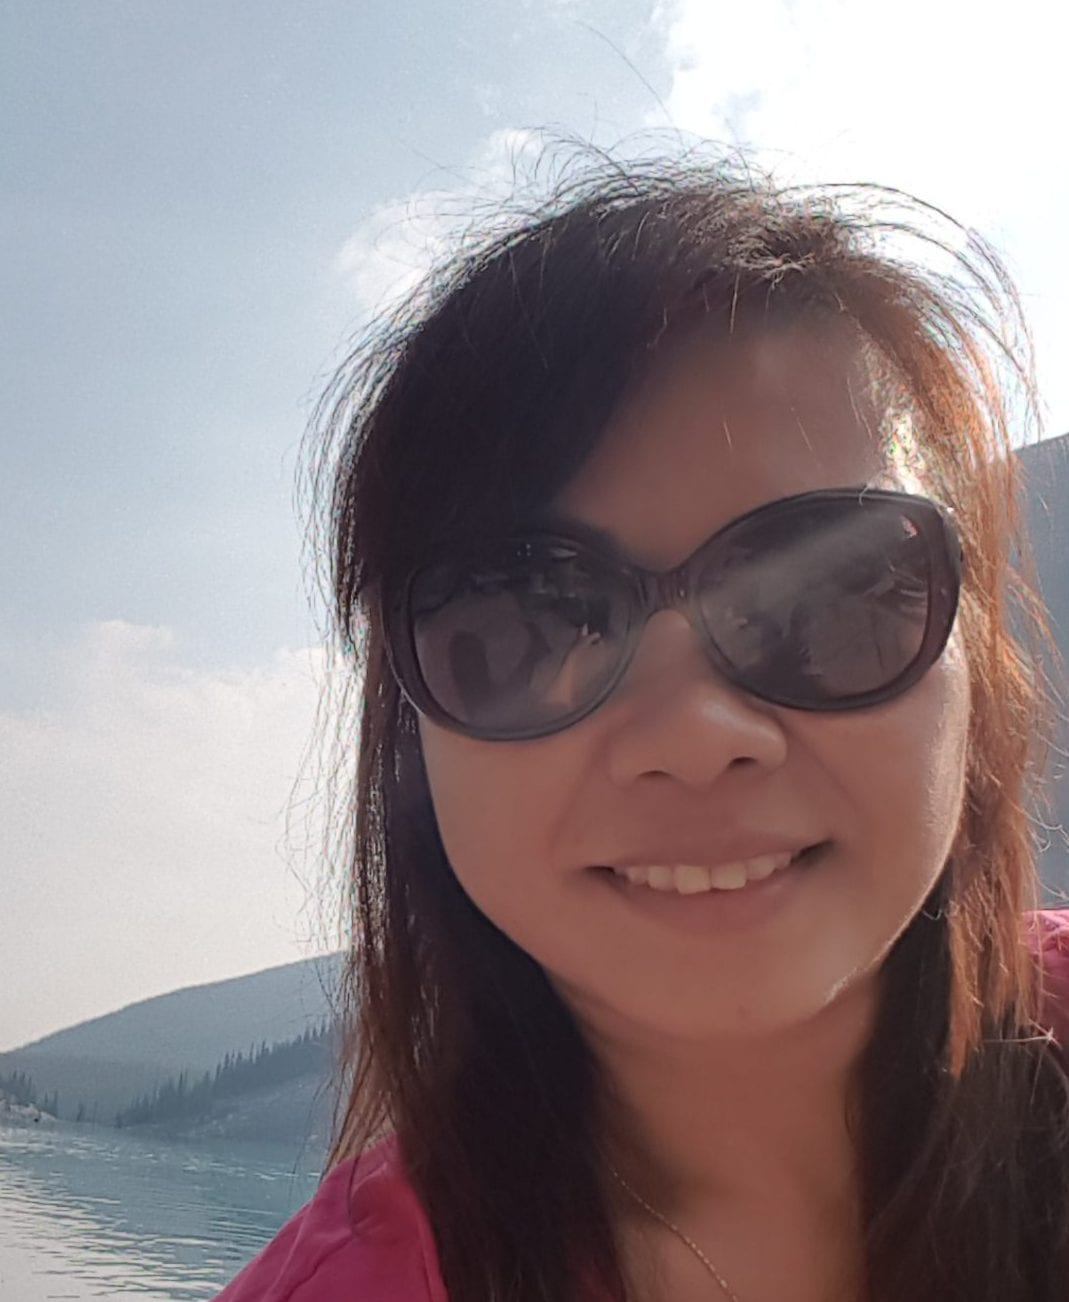 Swee cheng sale manager